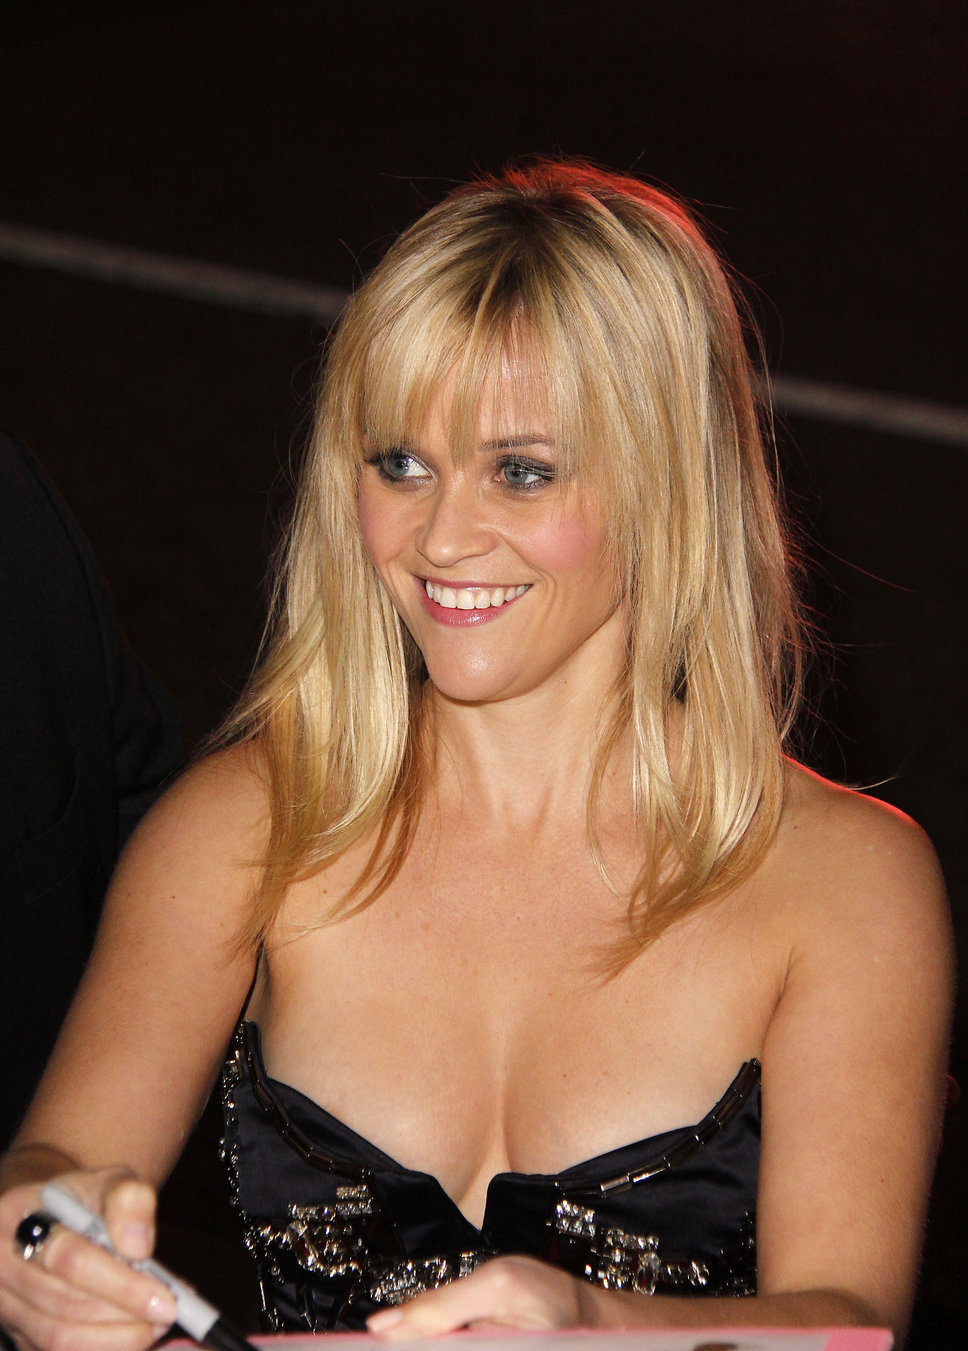 hq celebrity pictures: Reese Witherspoon hd wallpapers